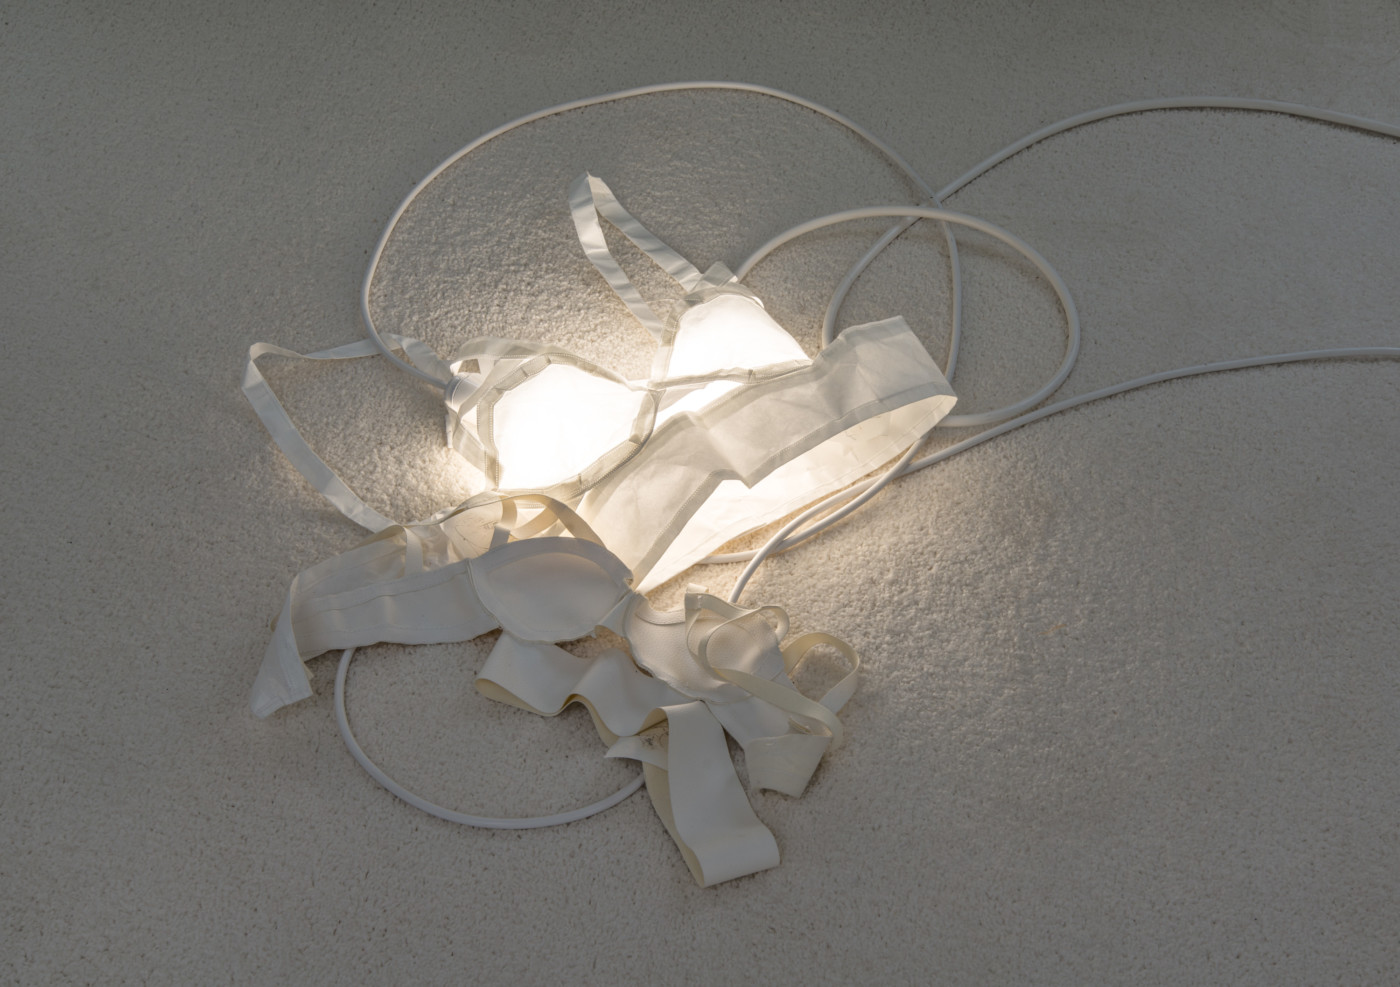 MÉLANIE MATRANGA  Ascendant , 2018 